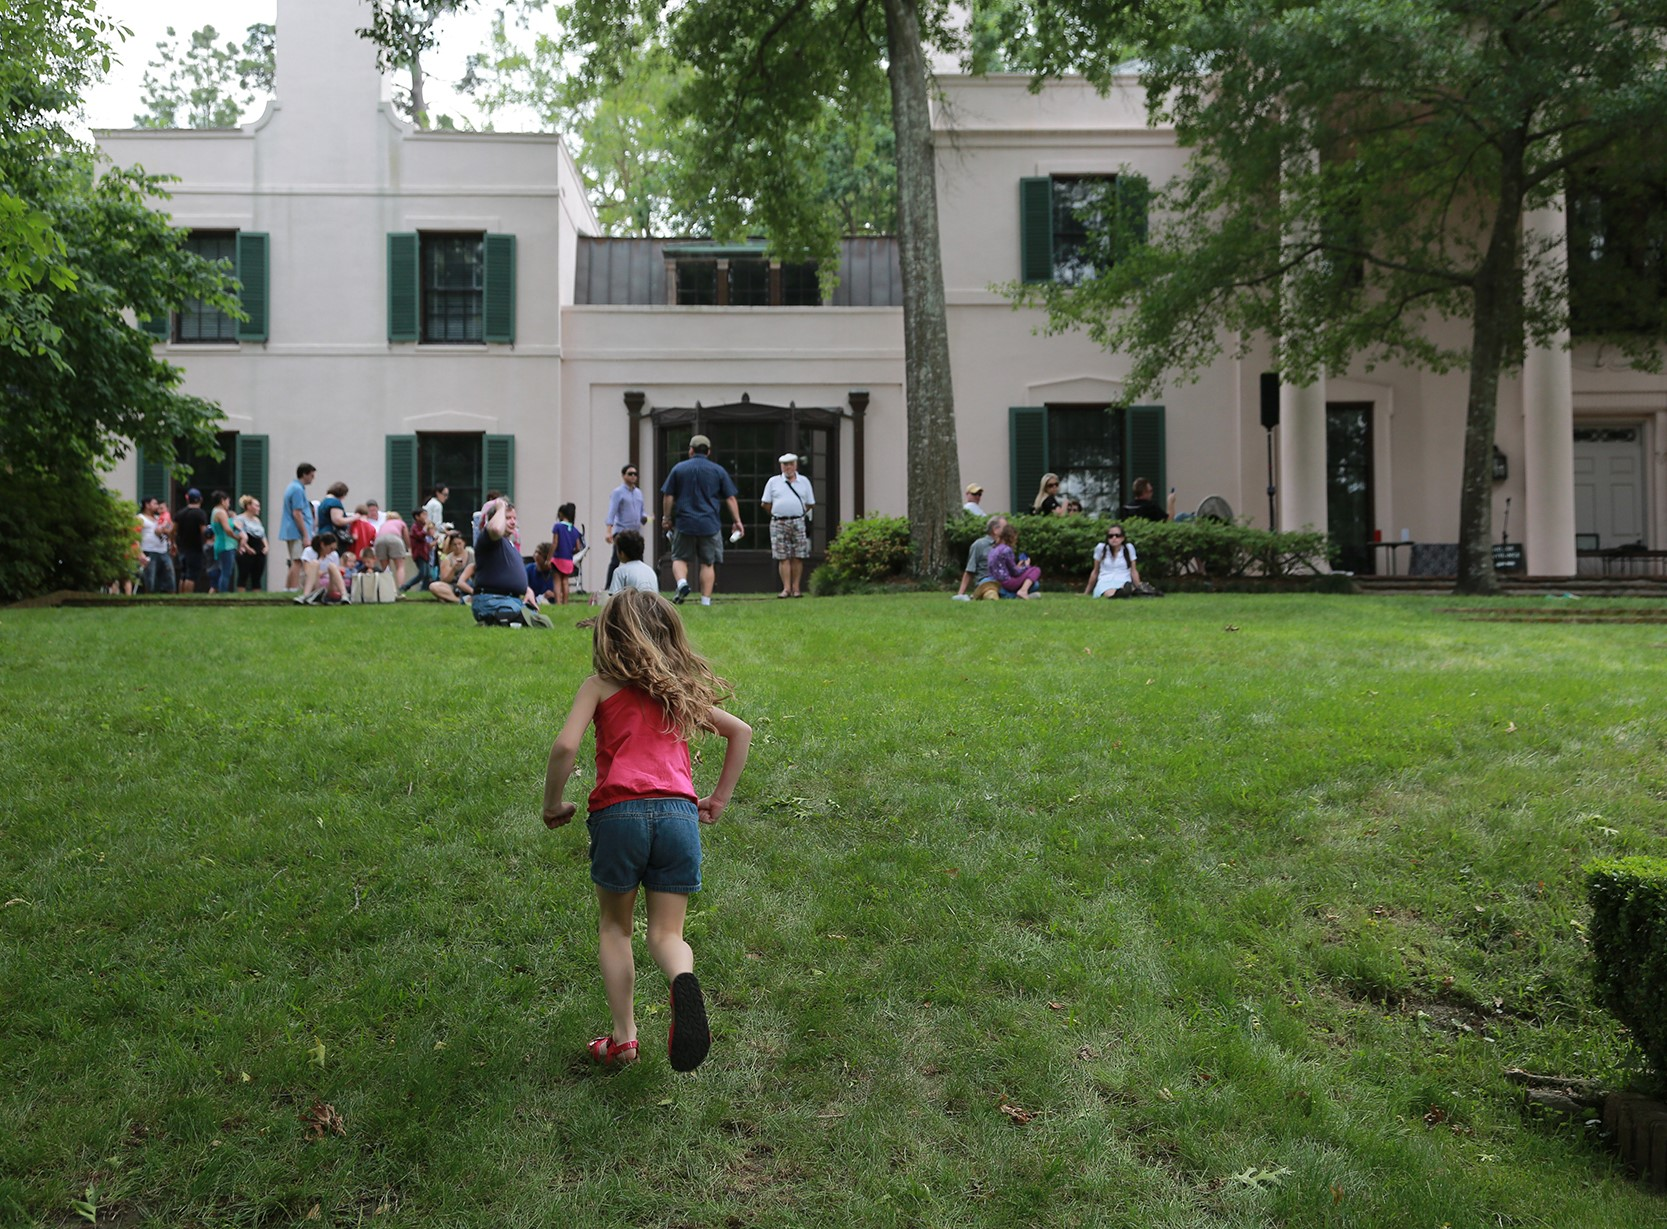 Family day at Bayou Bend - house facade and south lawn